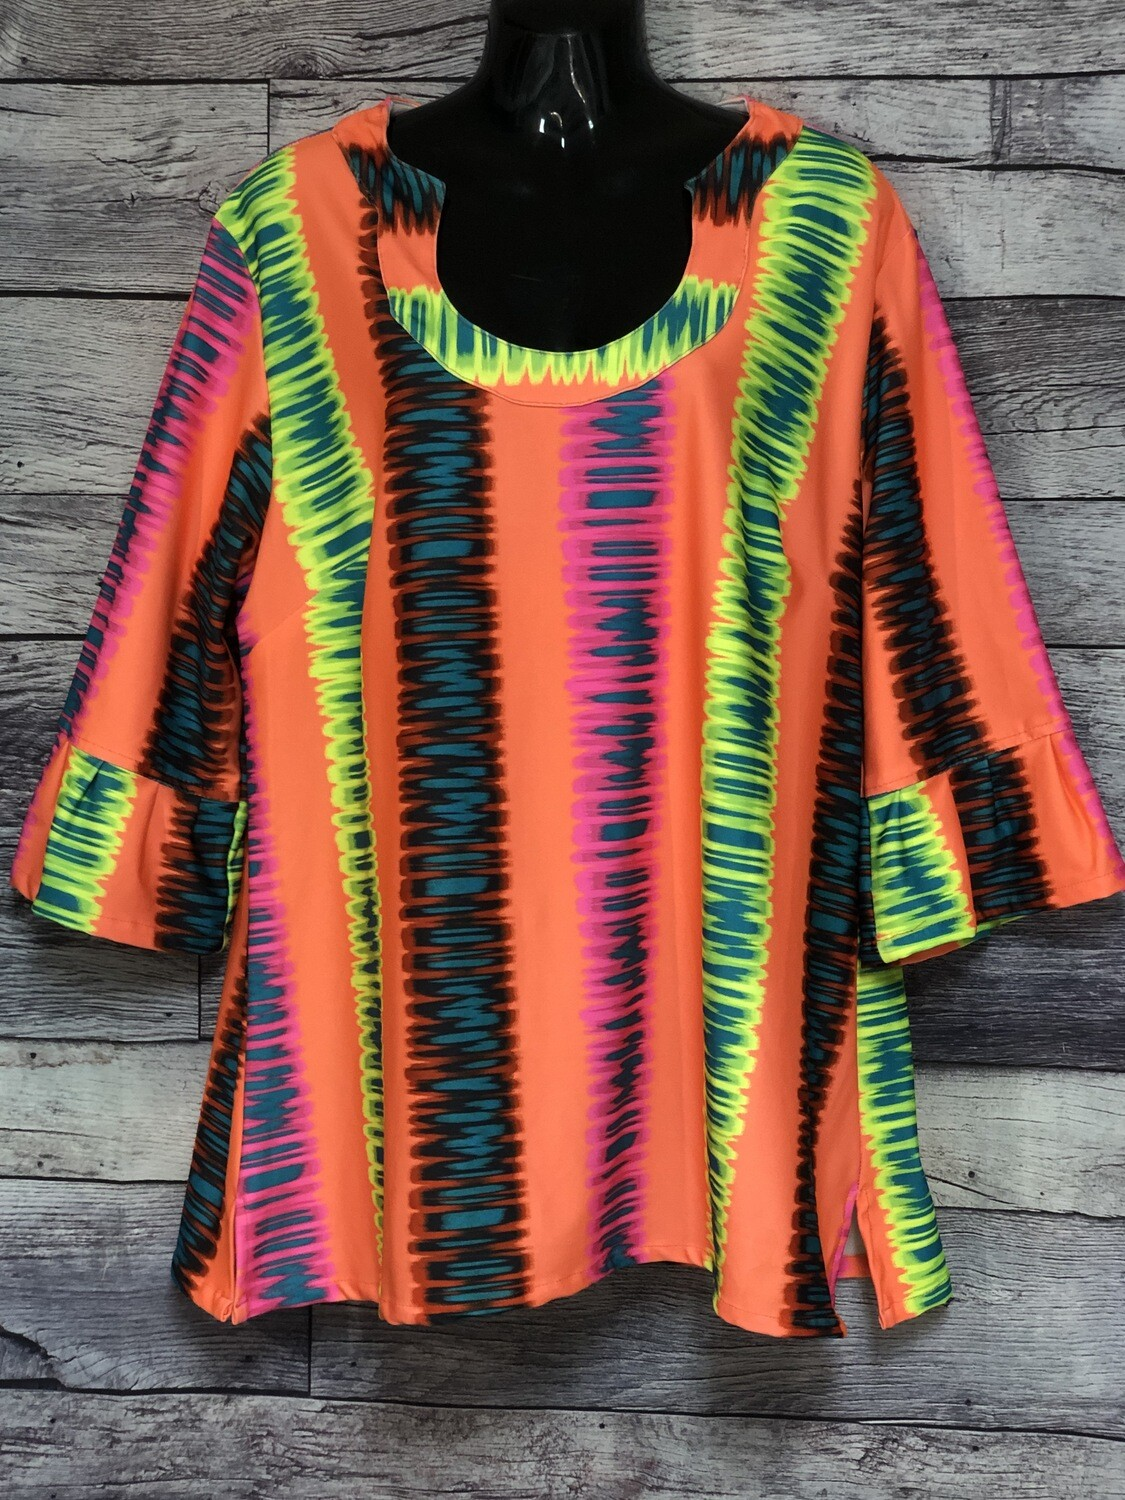 EMMA'S CLOSET Neon Print Poly Spandex Statement Top size XL